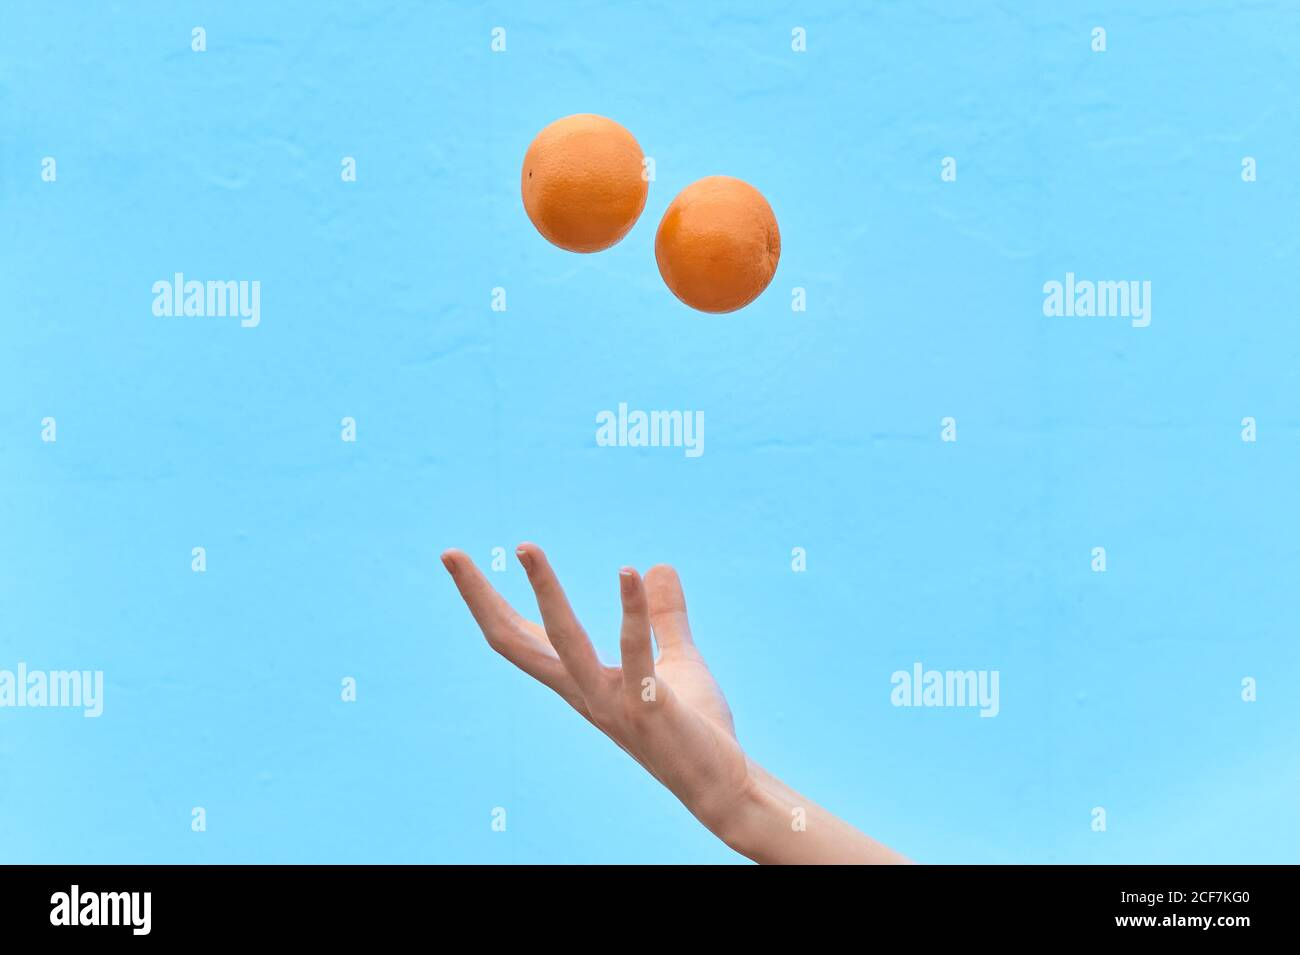 Crop woman tossing fresh orange in air showing concept of healthy diet on blue background Stock Photo